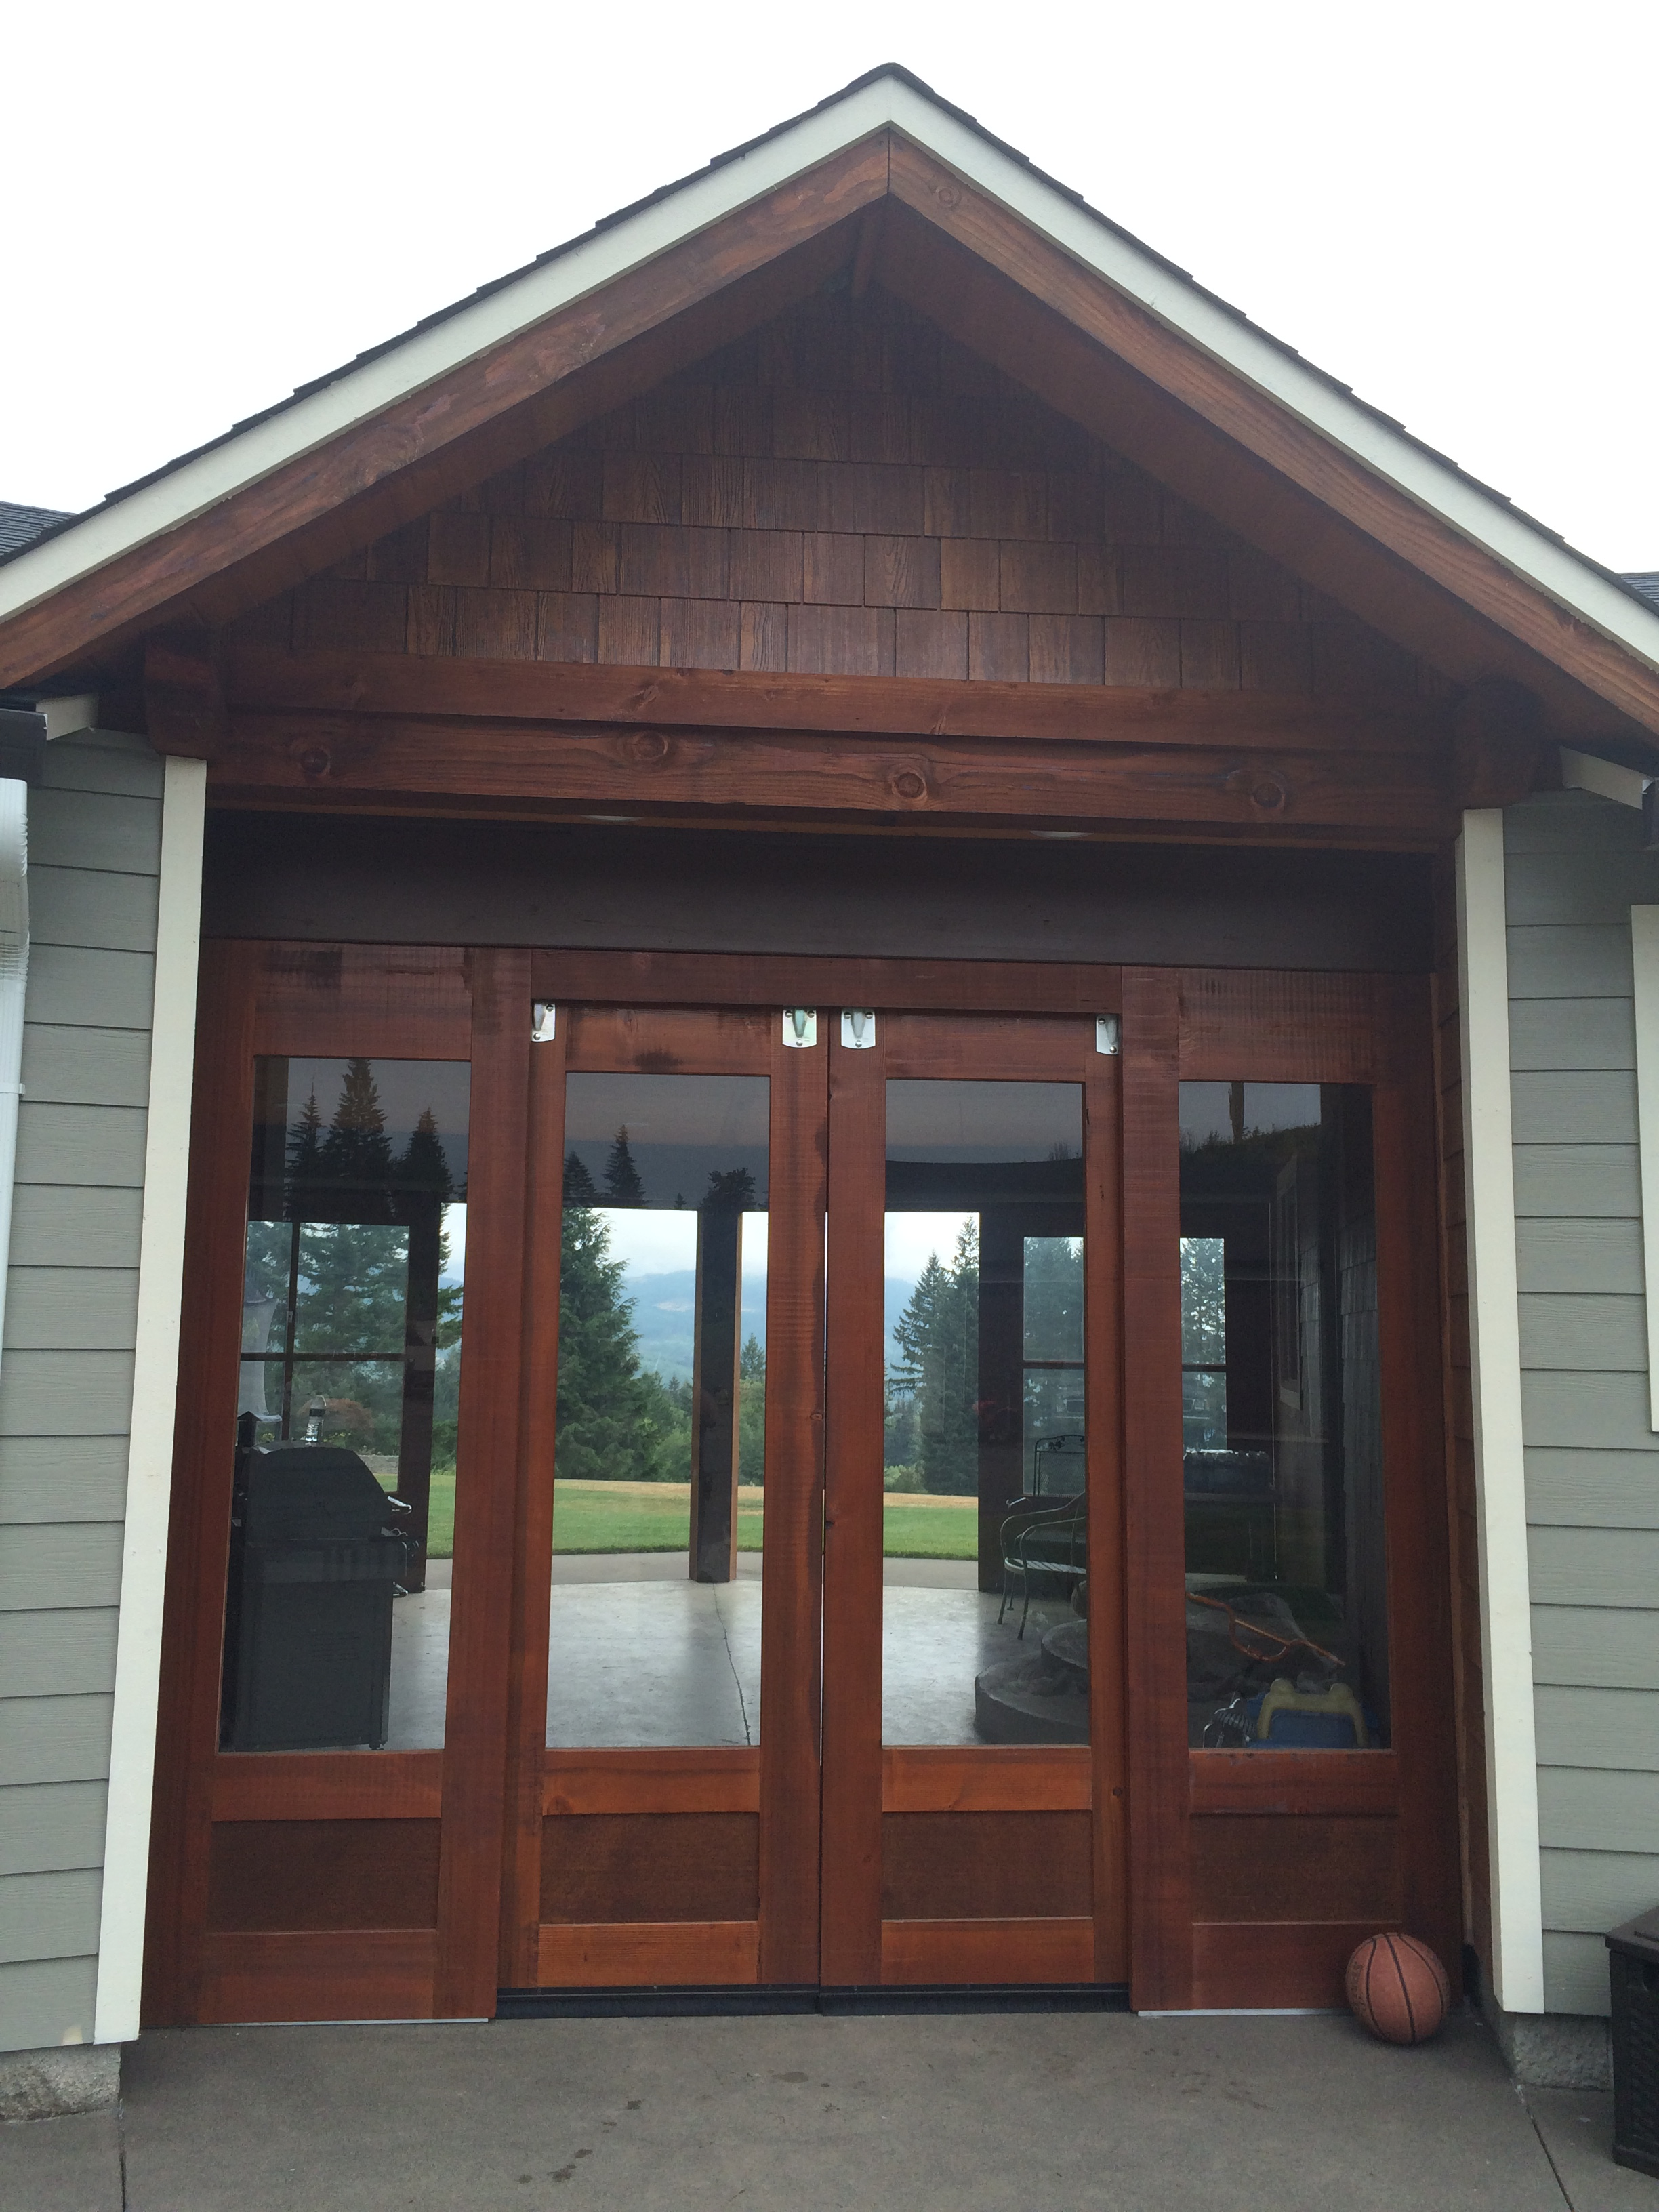 Exterior Glass Barn Doors exterior sliding barn door 5 panel design. wood trim windows